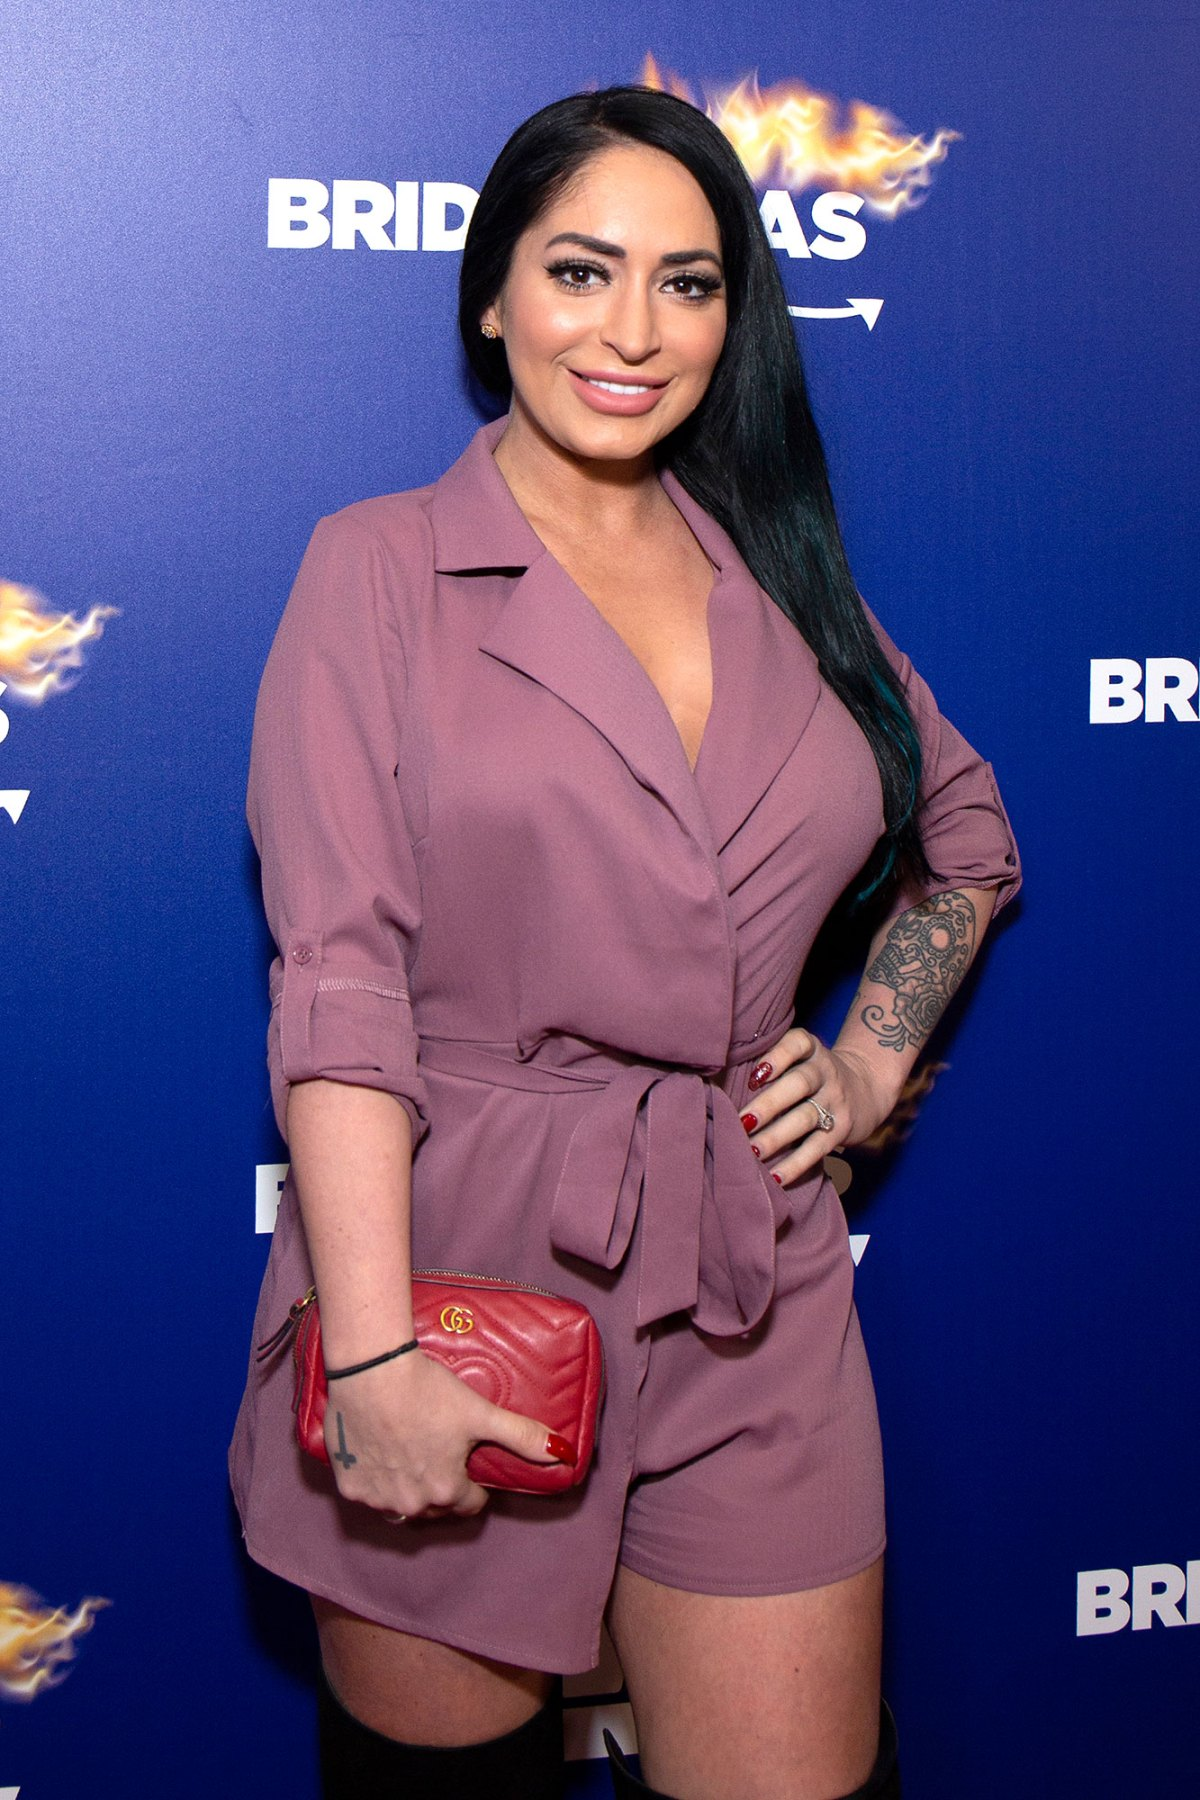 Angelina Jersey Shore Sexy jersey shore' cast sends nicole 'snooki' polizzi well-wishes